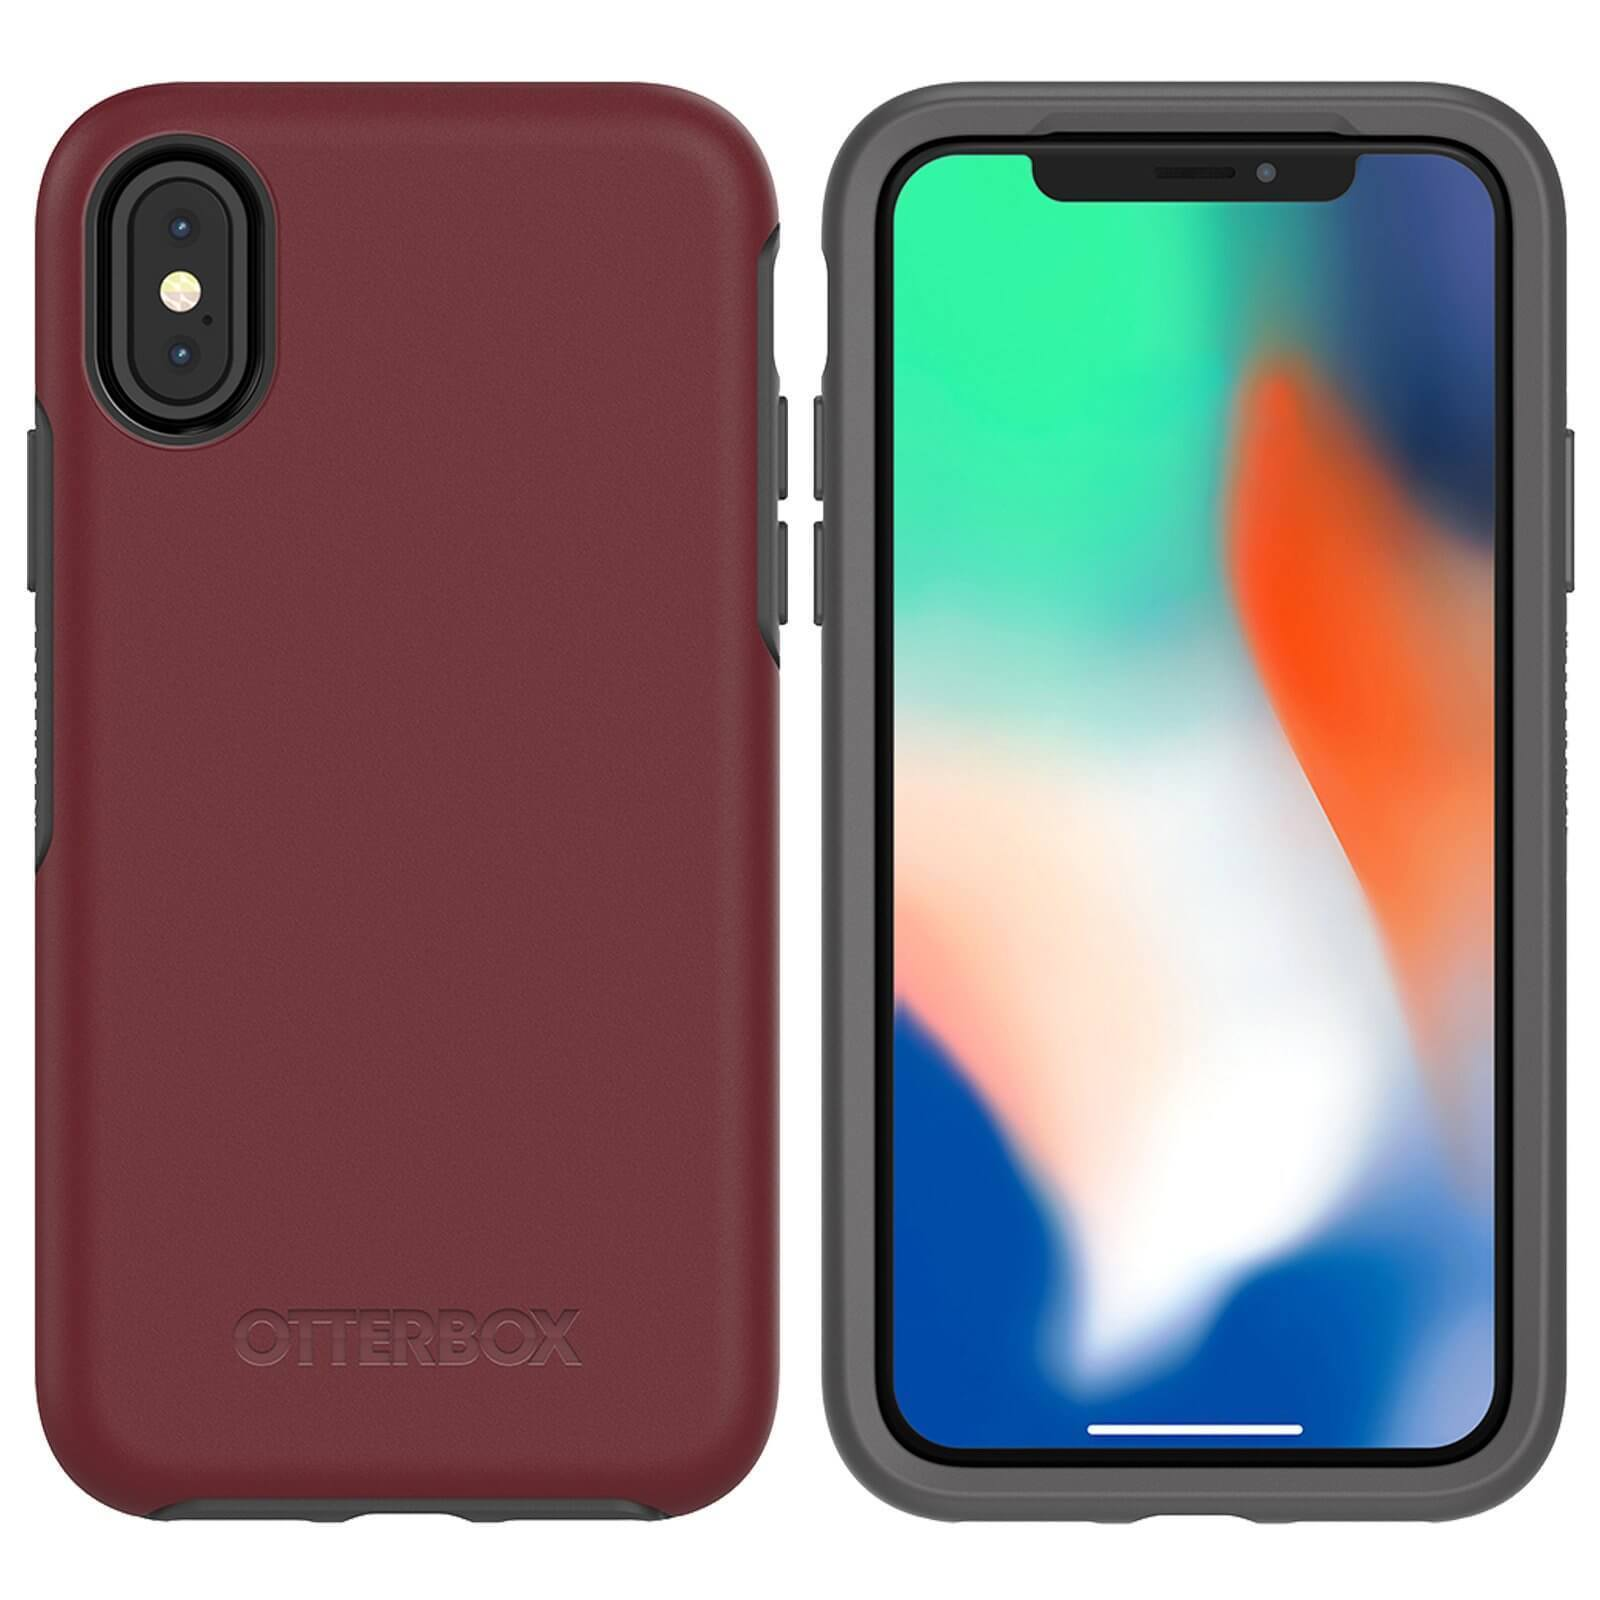 Otterbox Symmetry Series - High Hybrid Protection Case for iPhone X (Red)